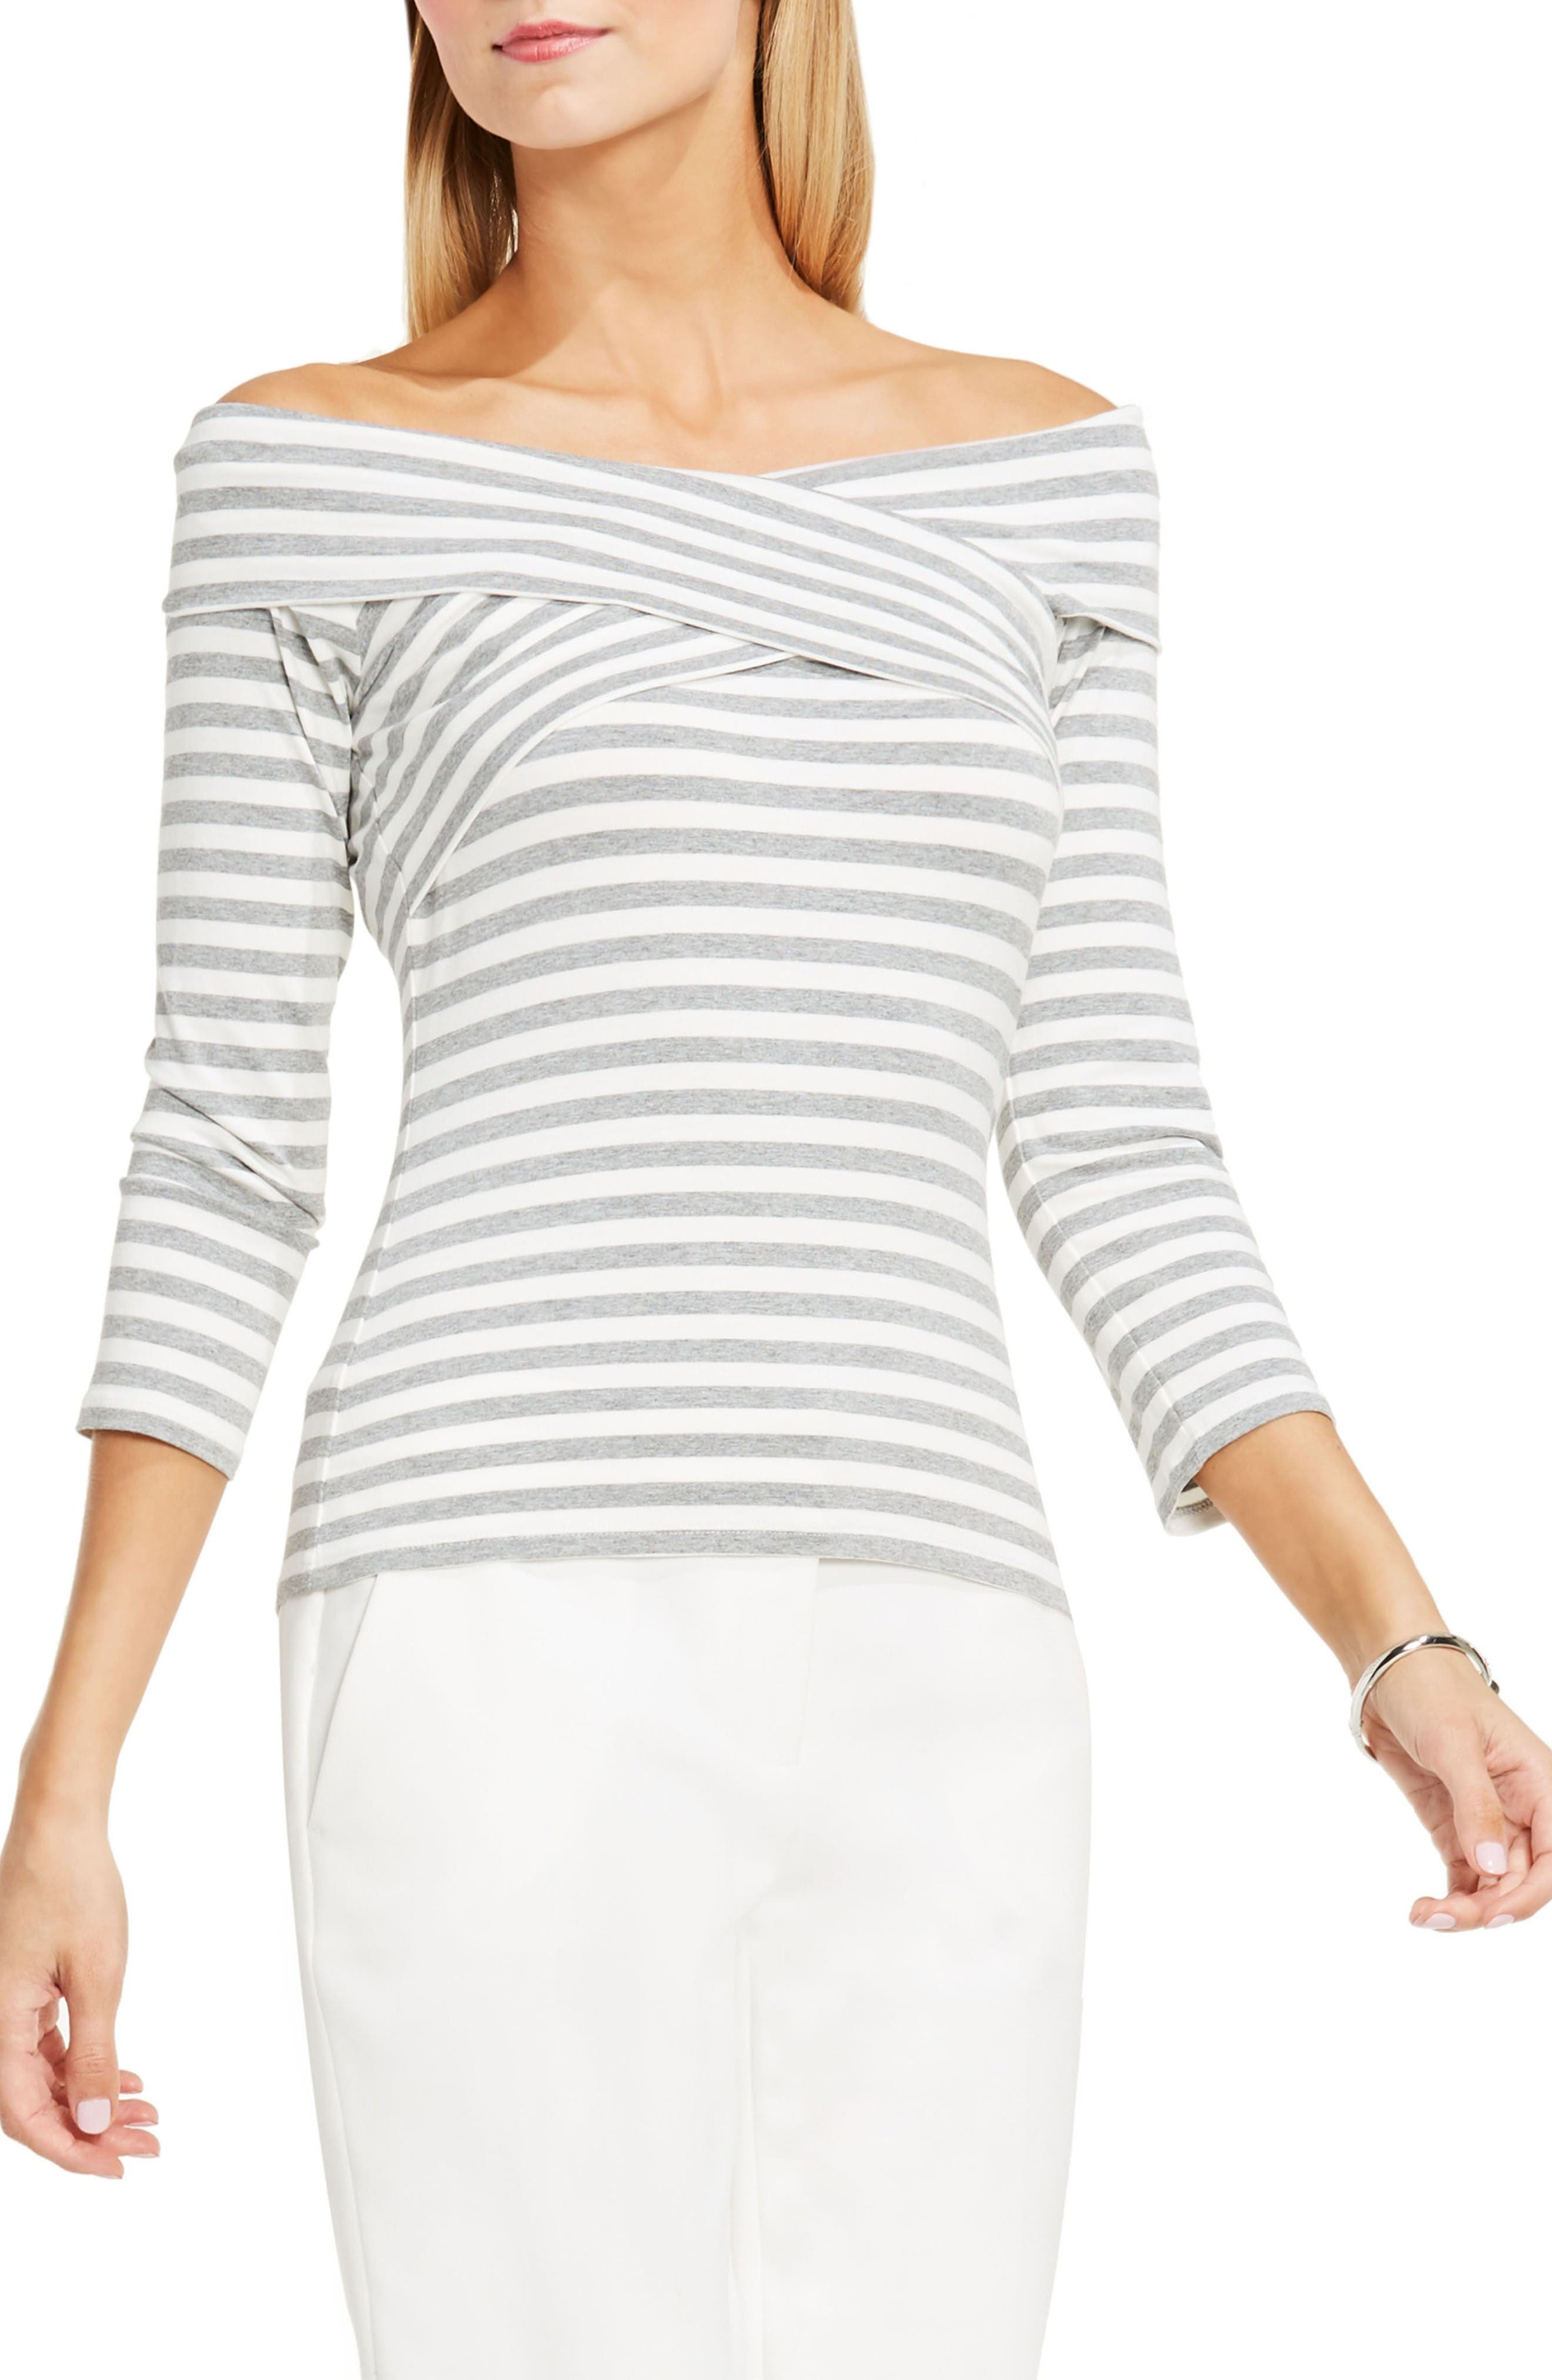 Main Image - Vince Camuto Stretch Knit Off the Shoulder Top